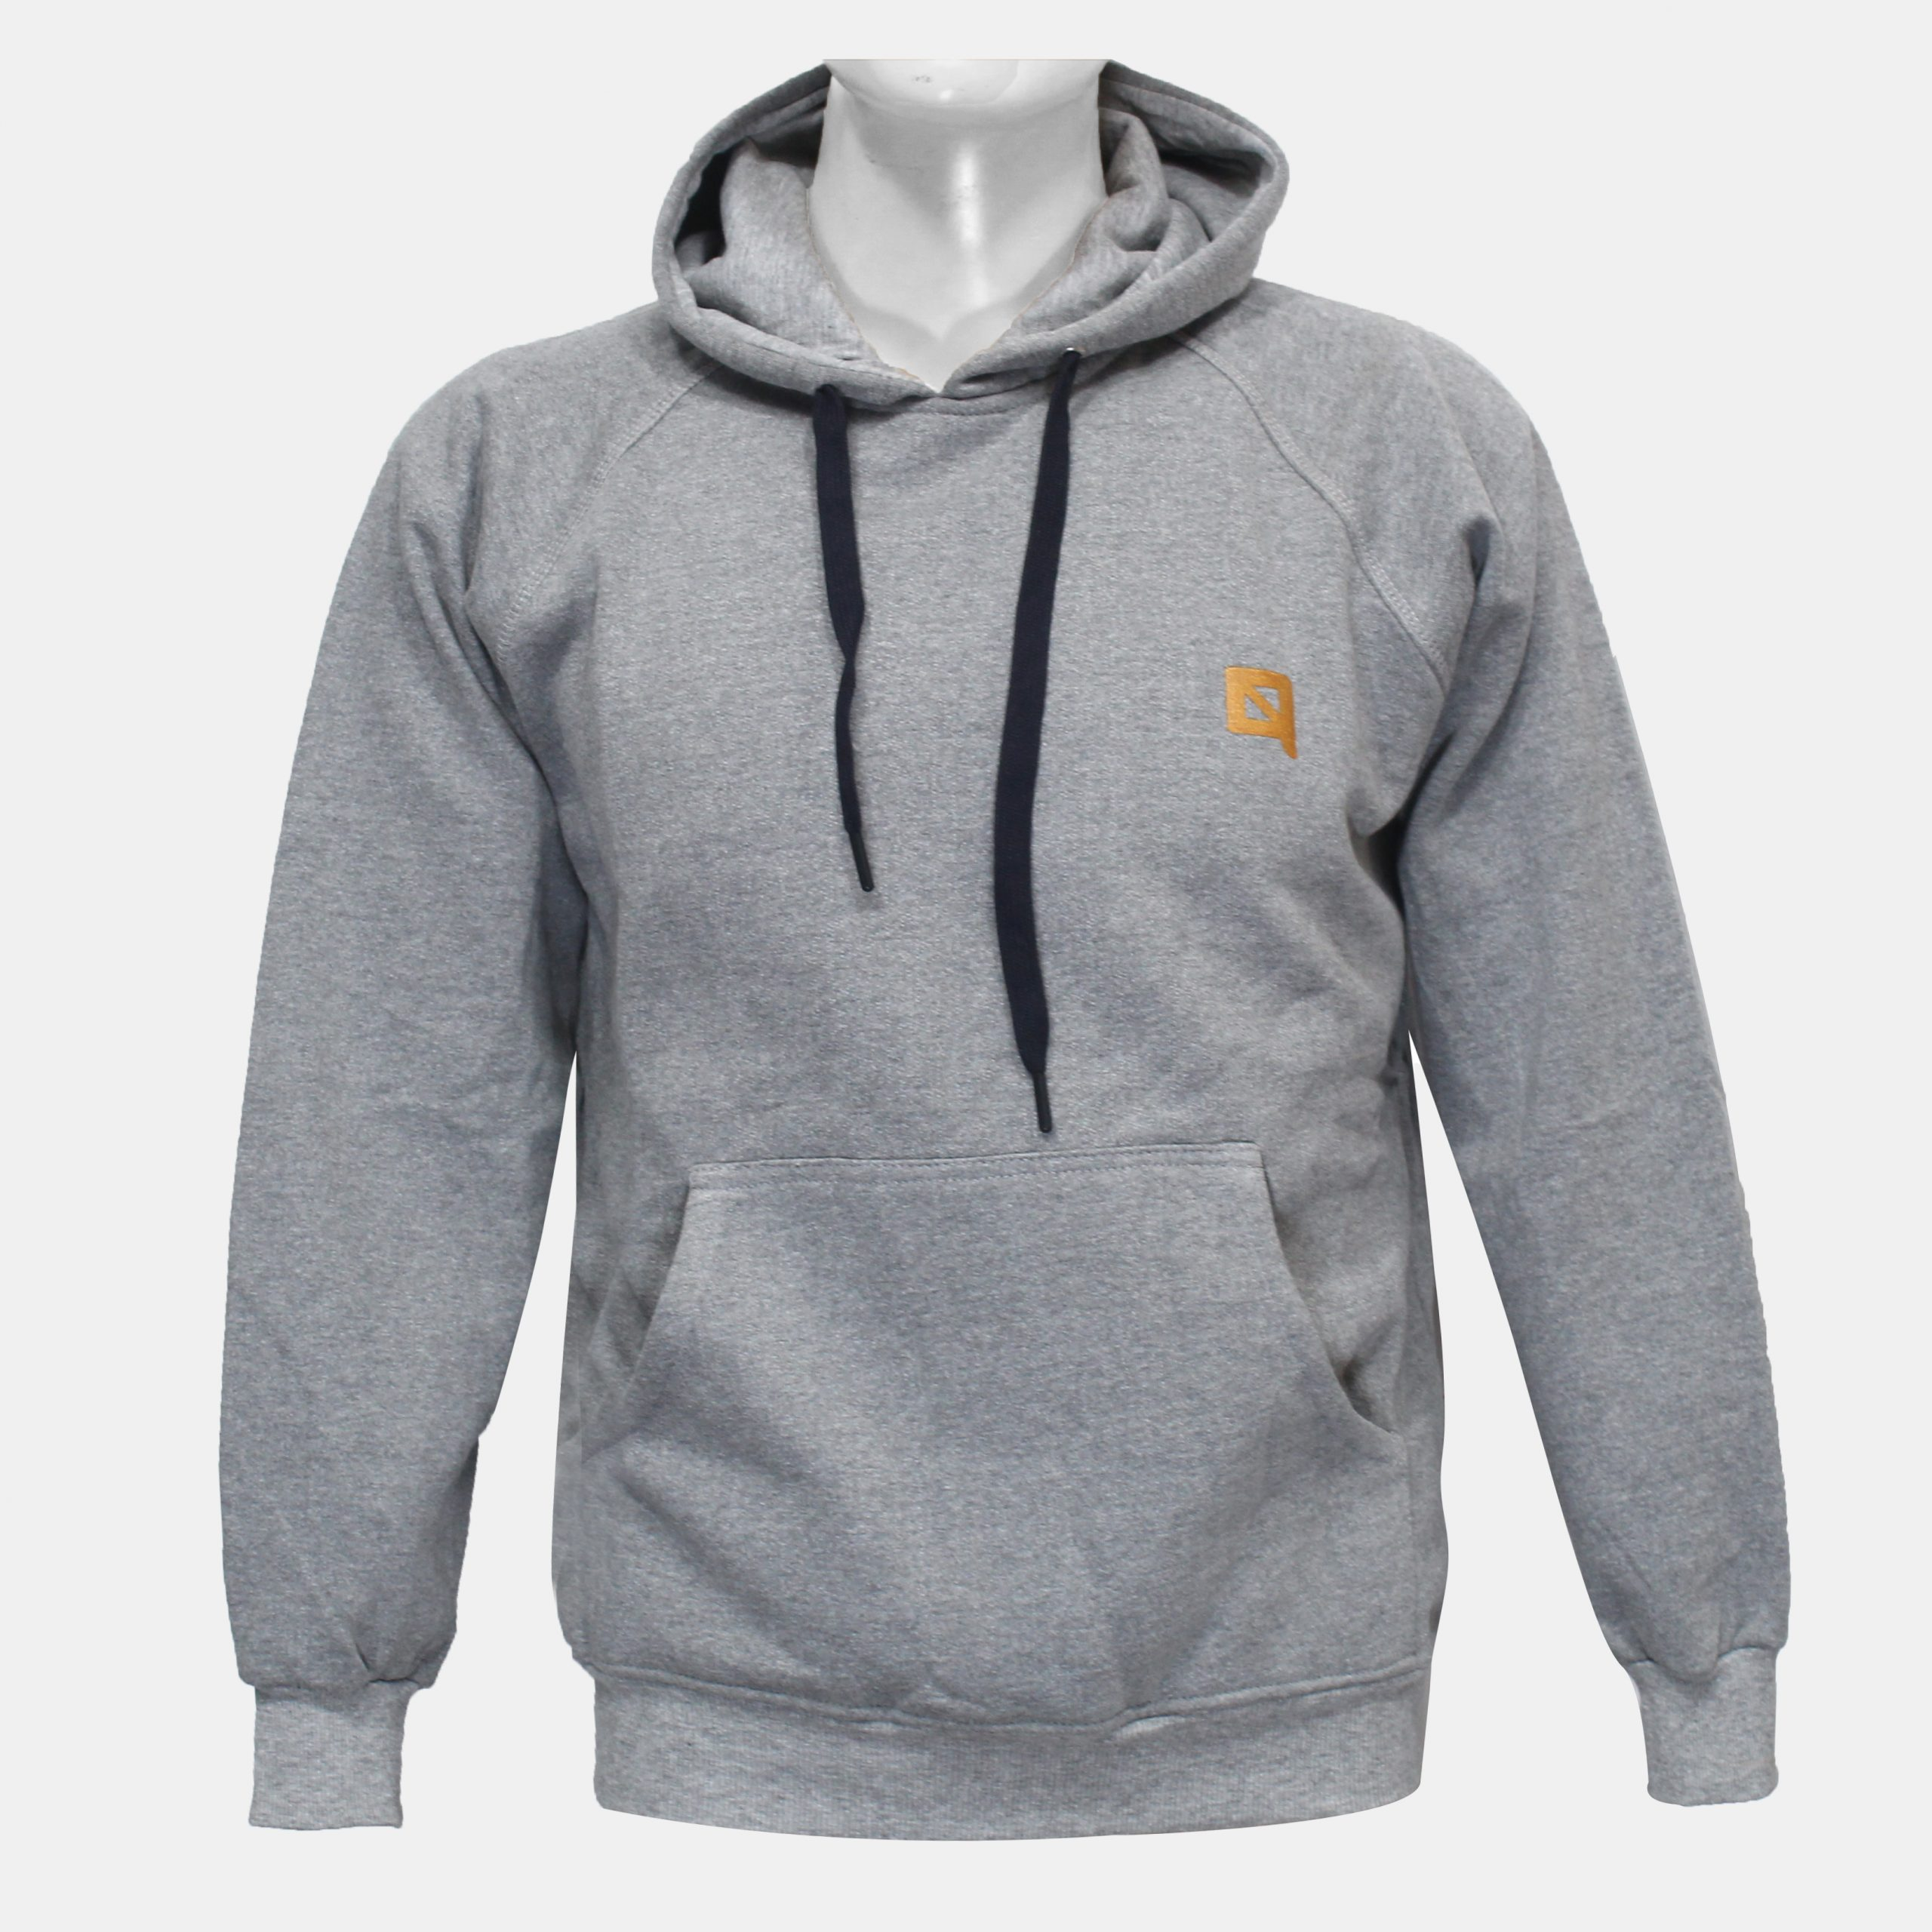 Grey Hoodie For Men